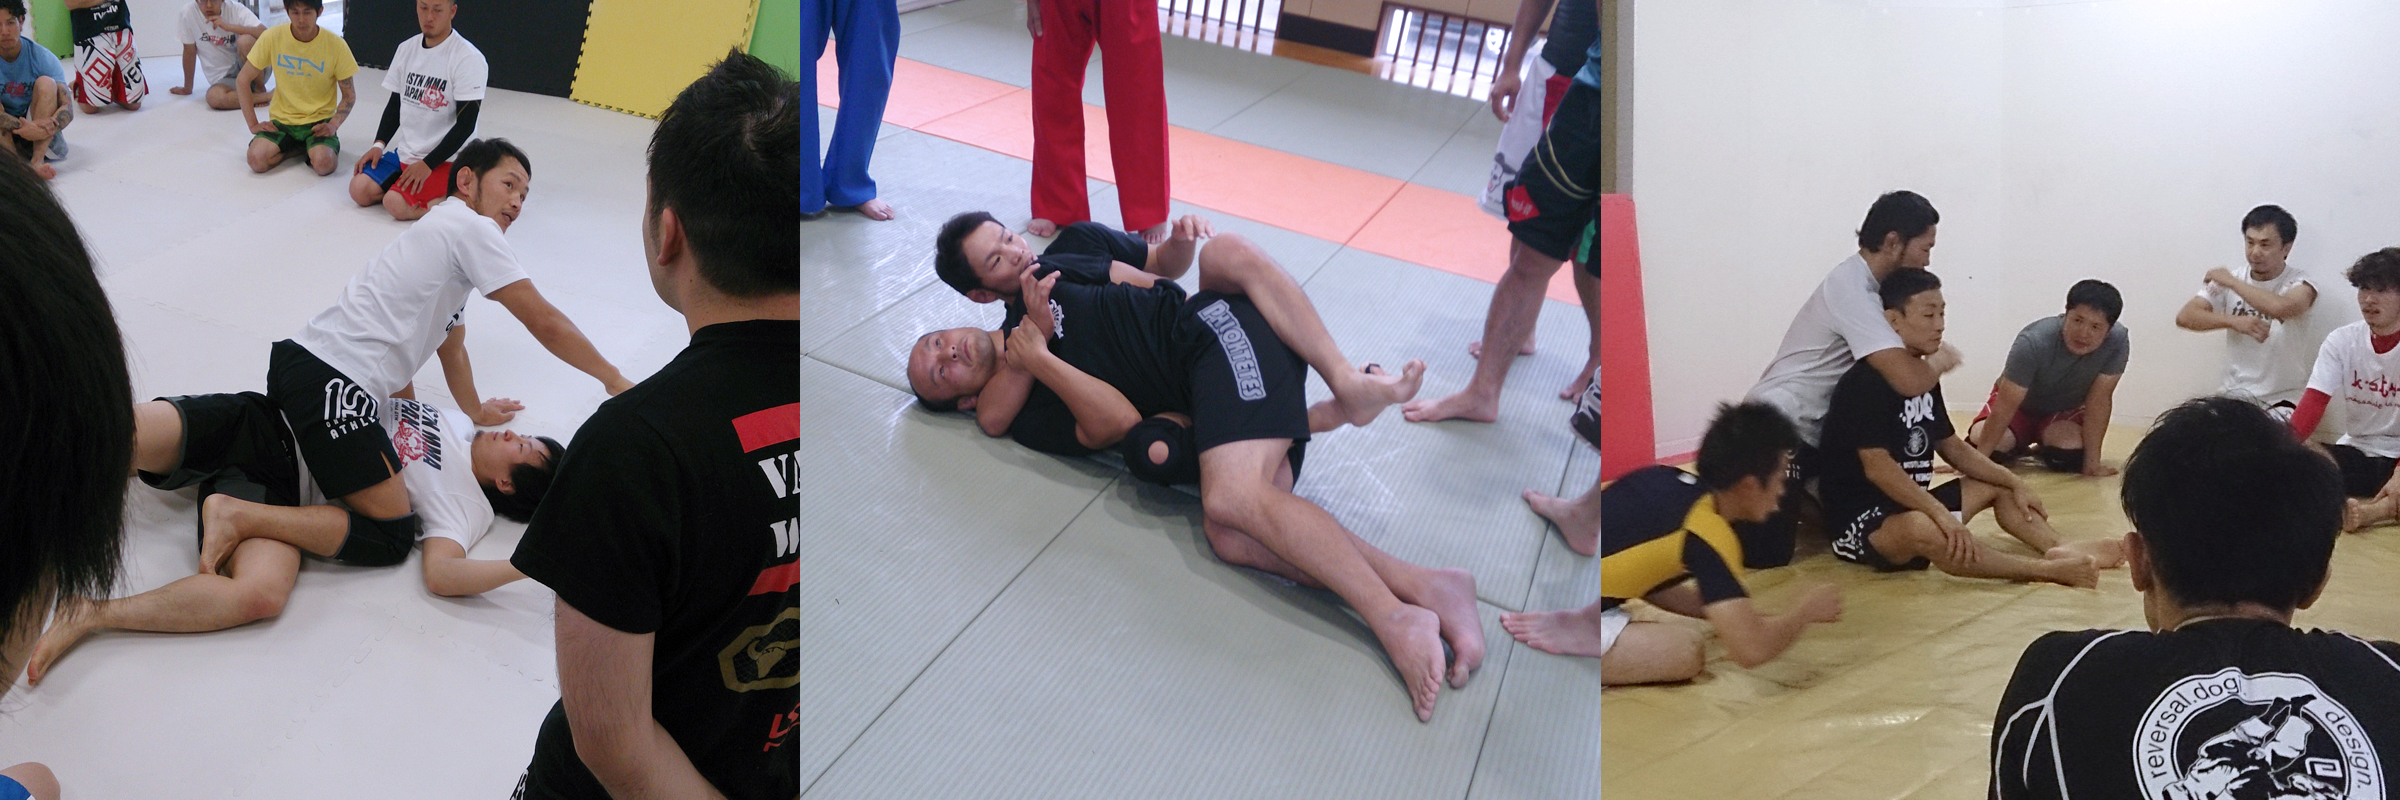 mmaworkshop